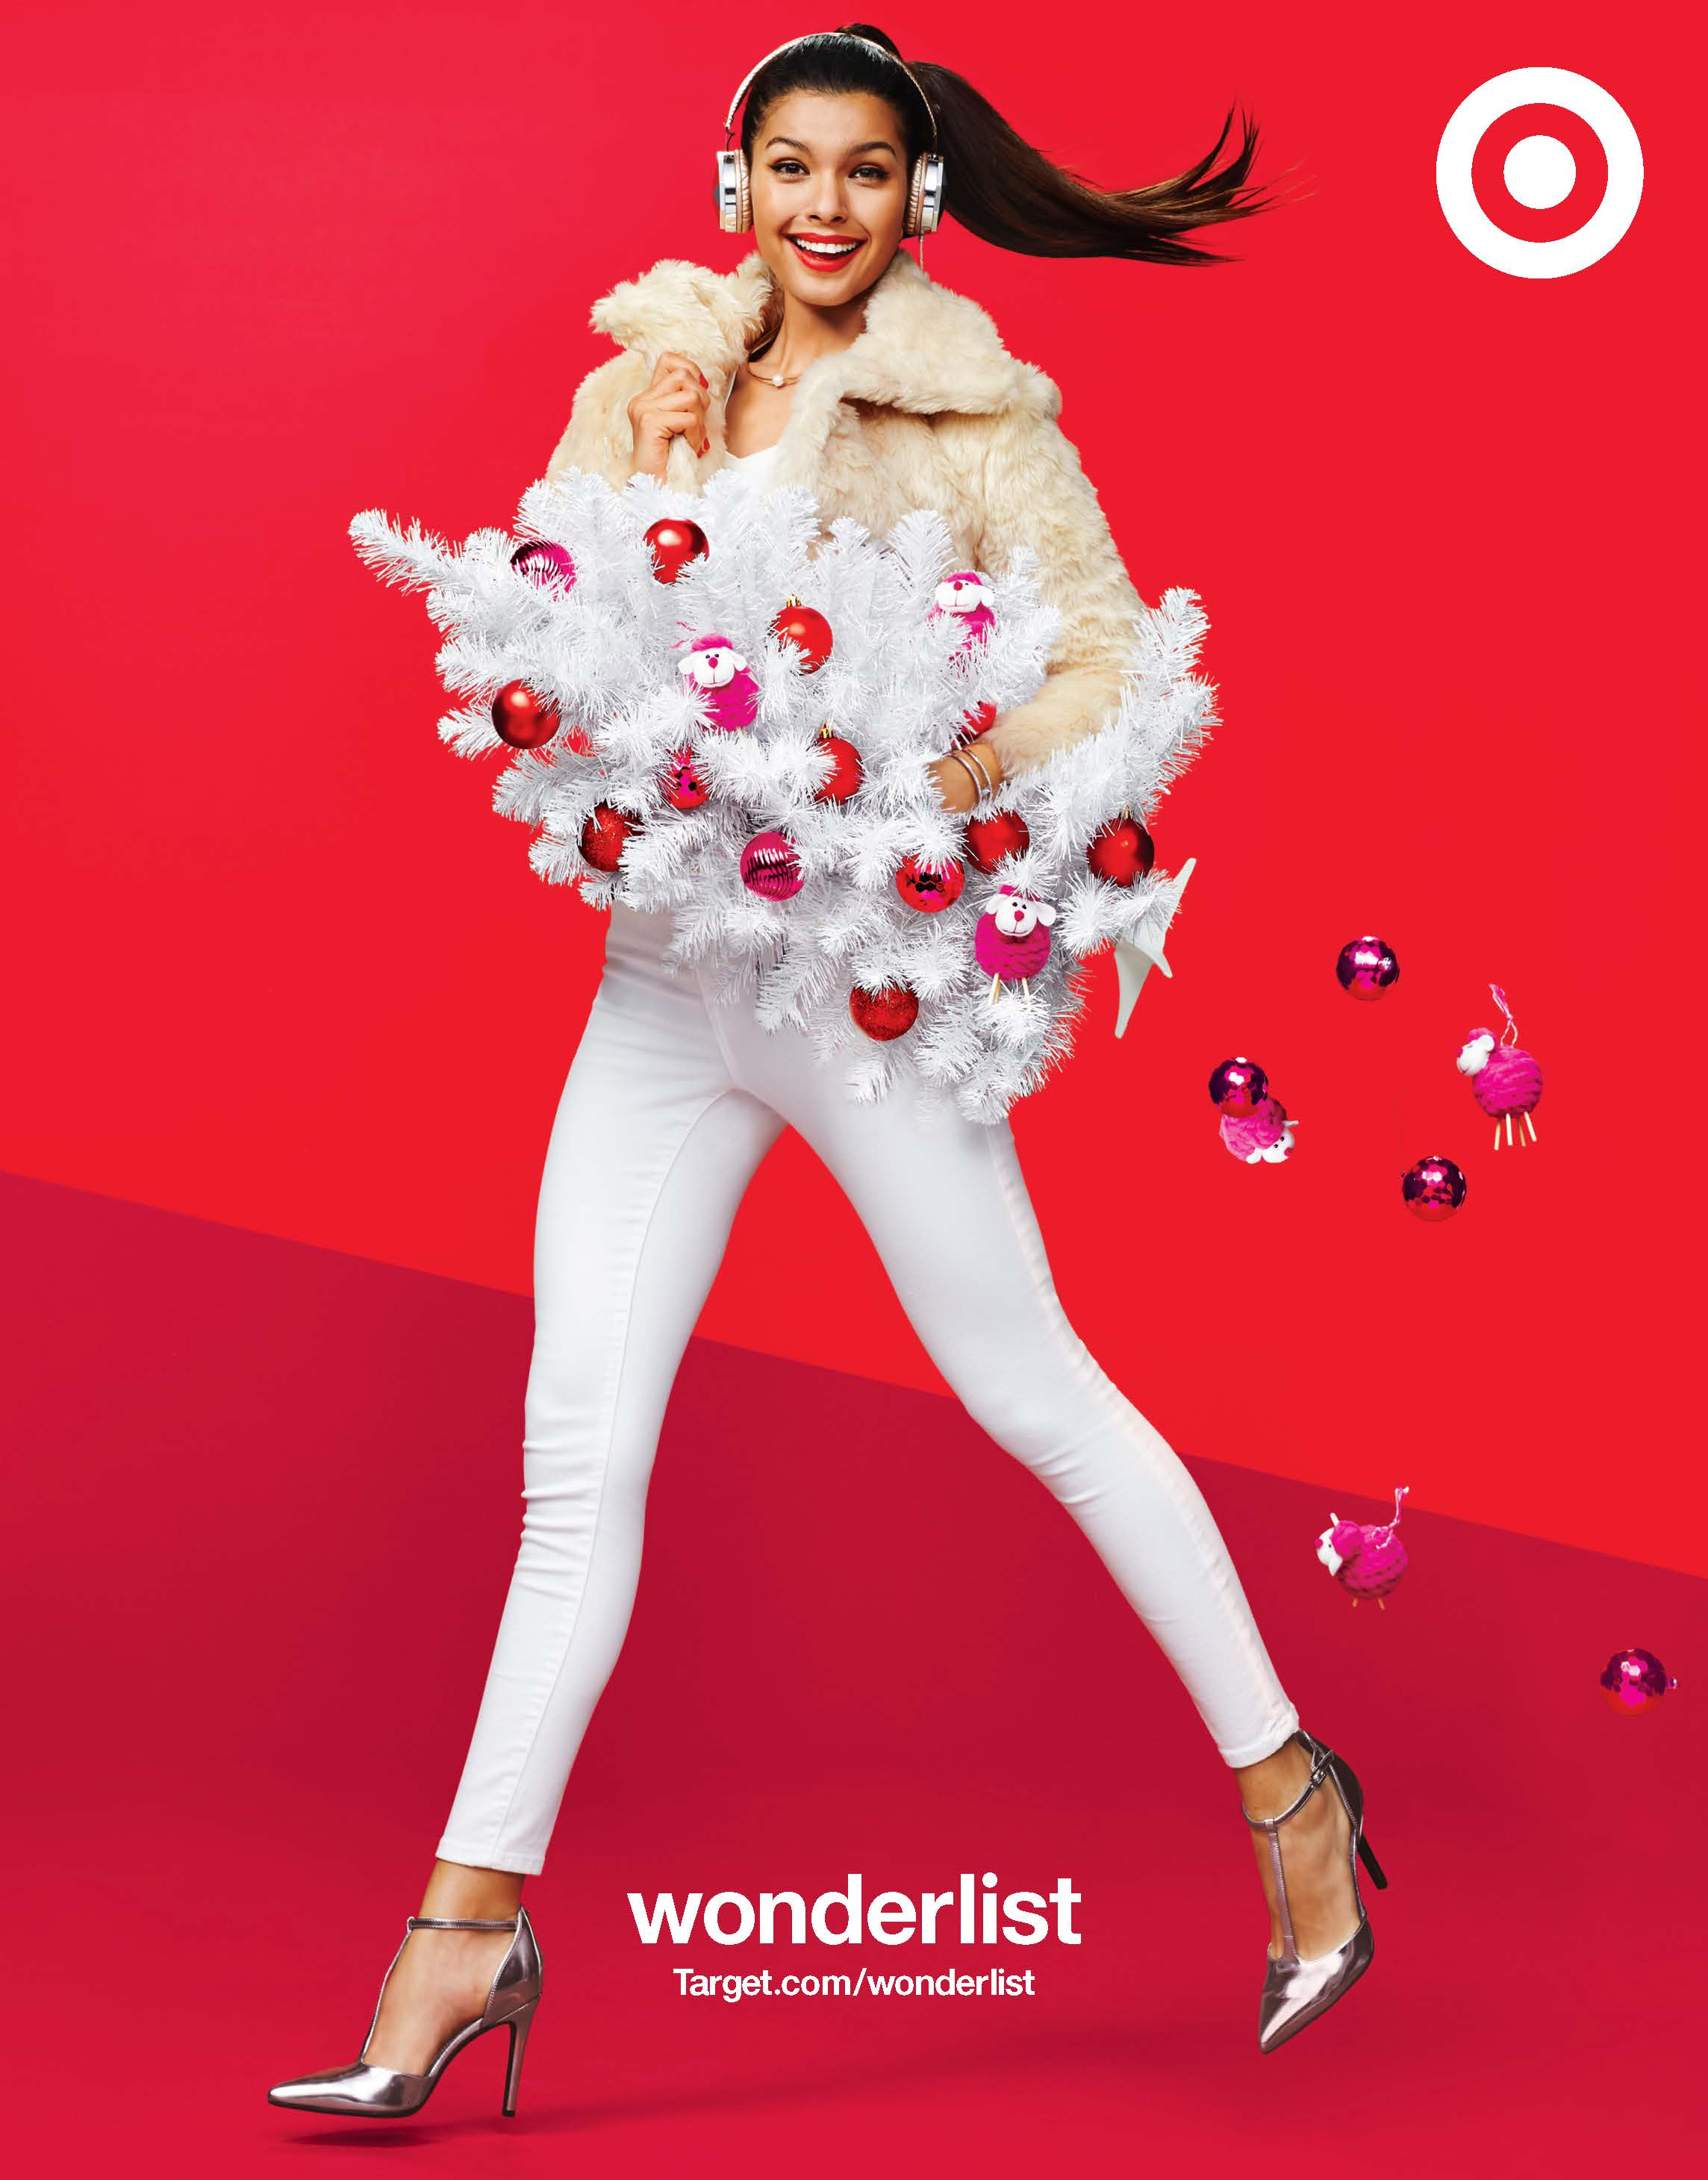 Target Unveils Plans for Holiday 2015 Shopping Season